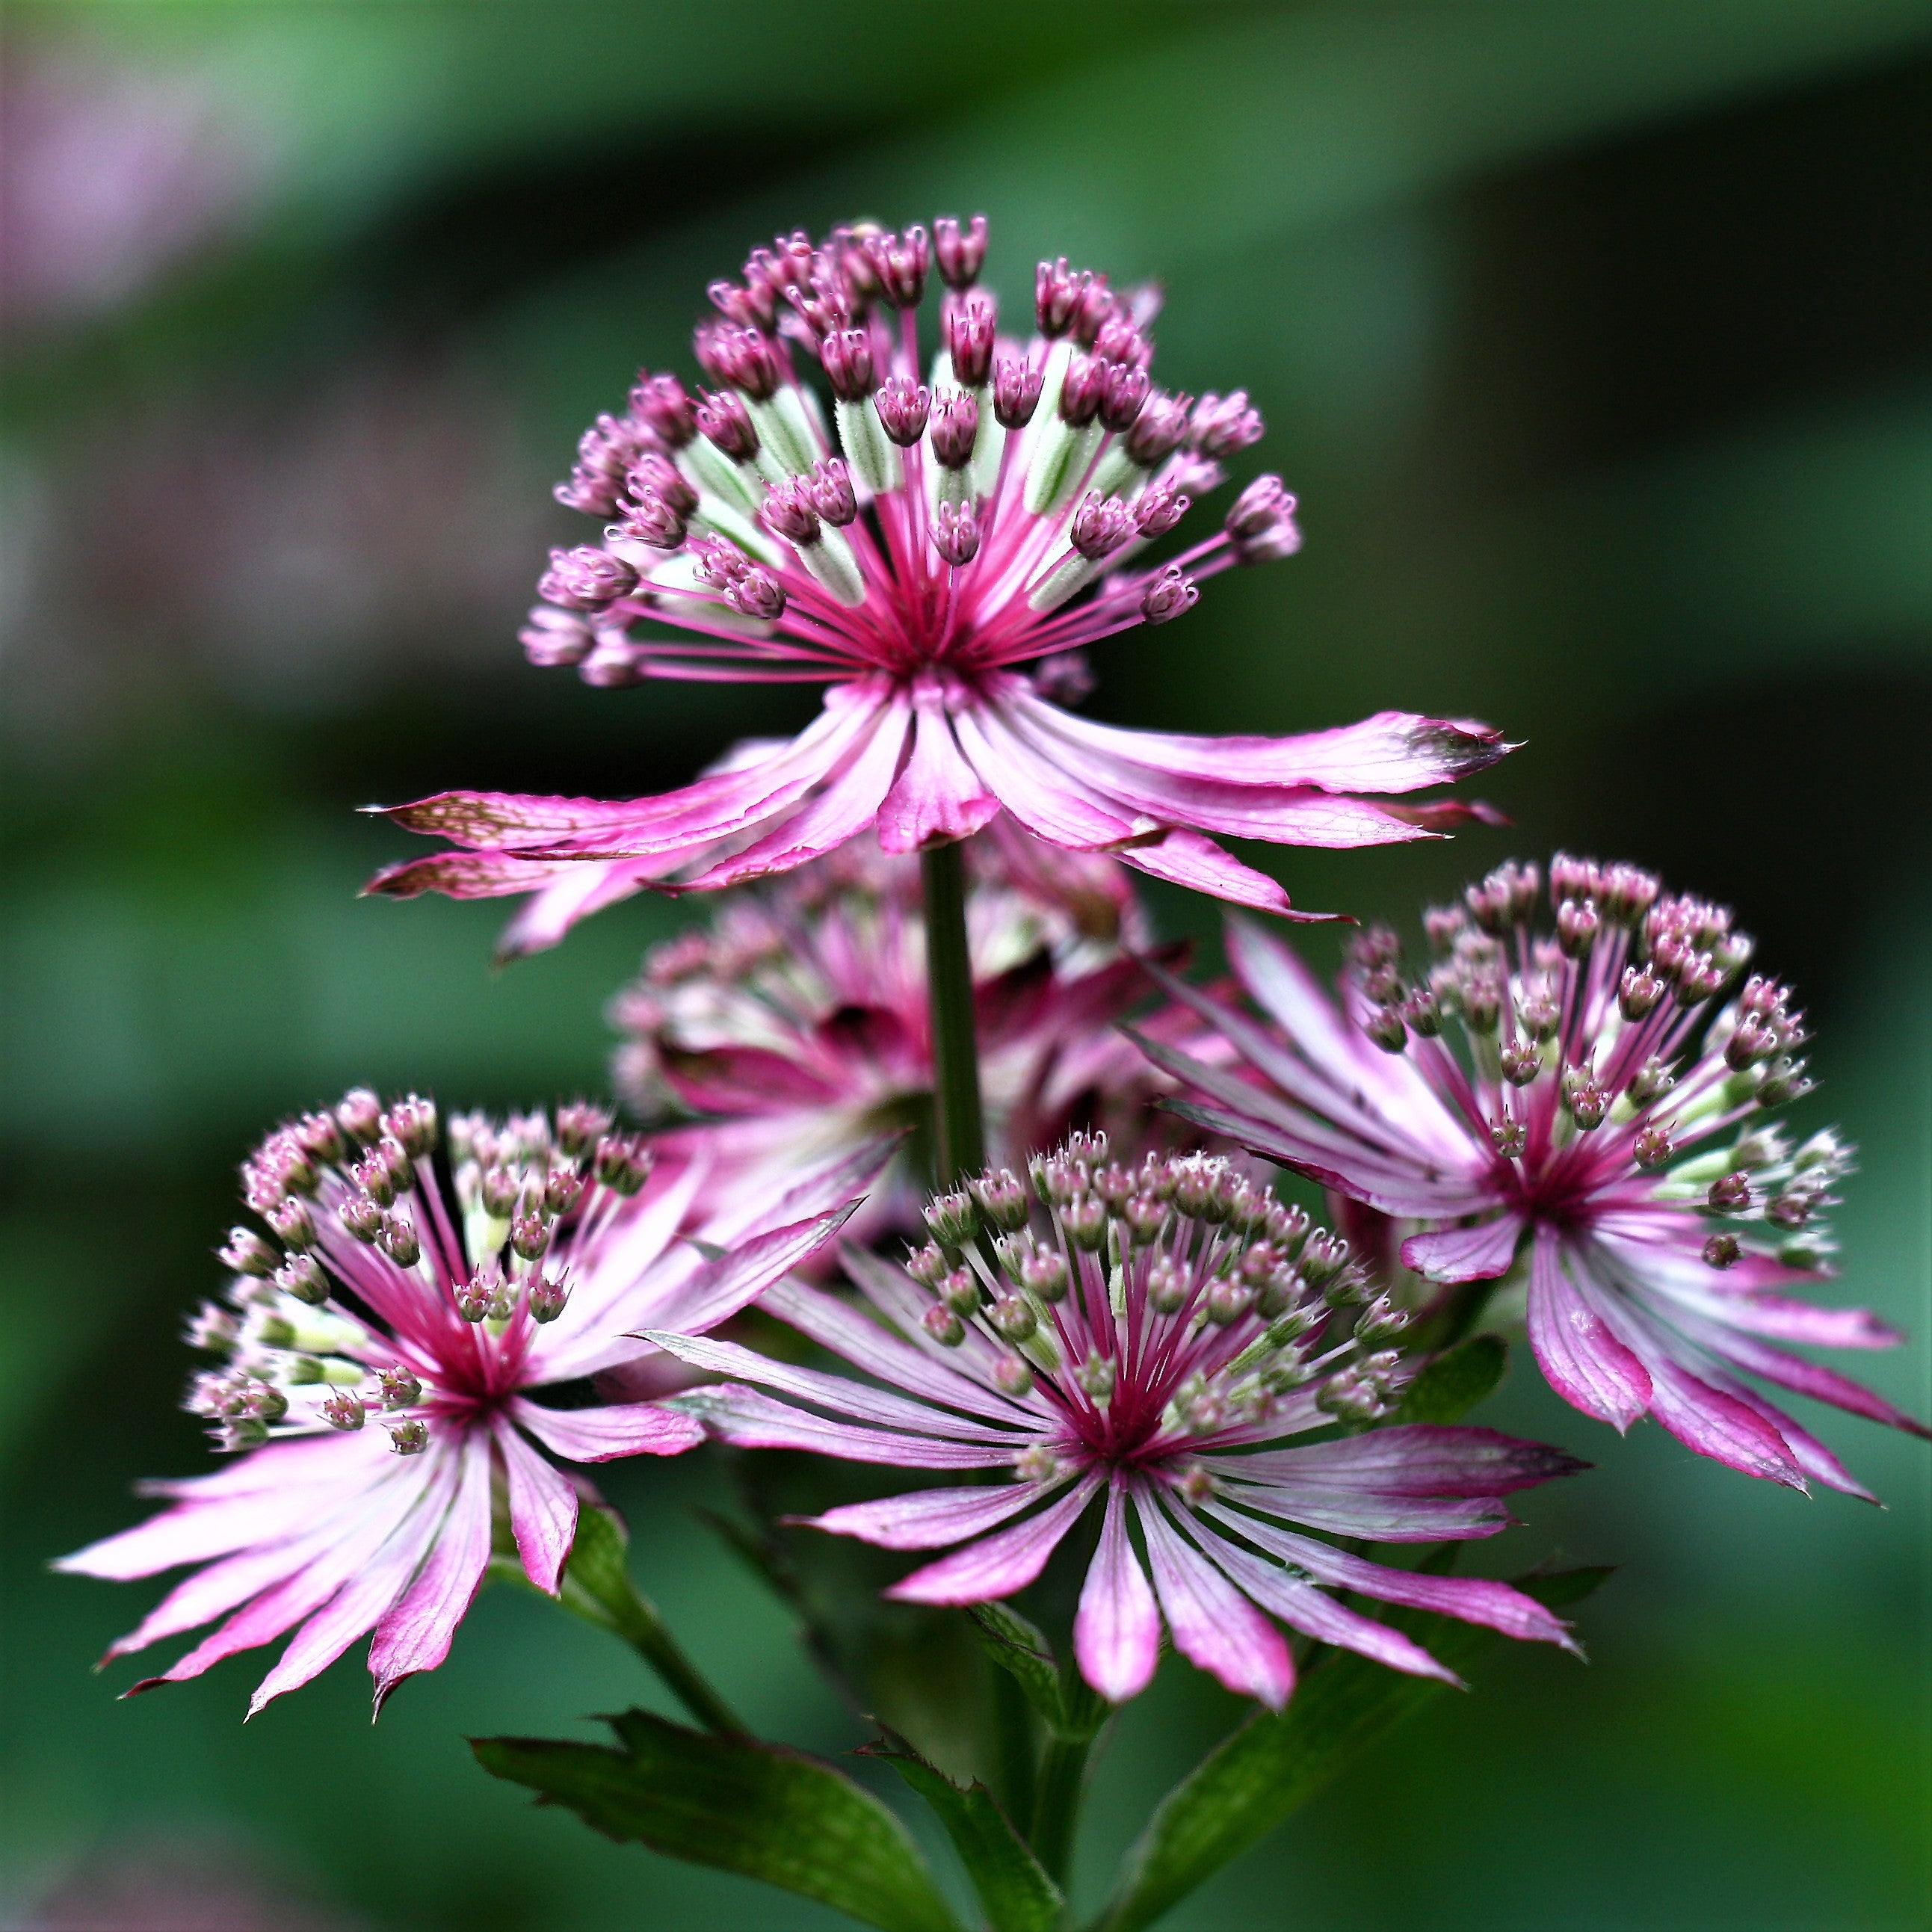 Astrantia Abbey Road Great Masterwort Abbey Road